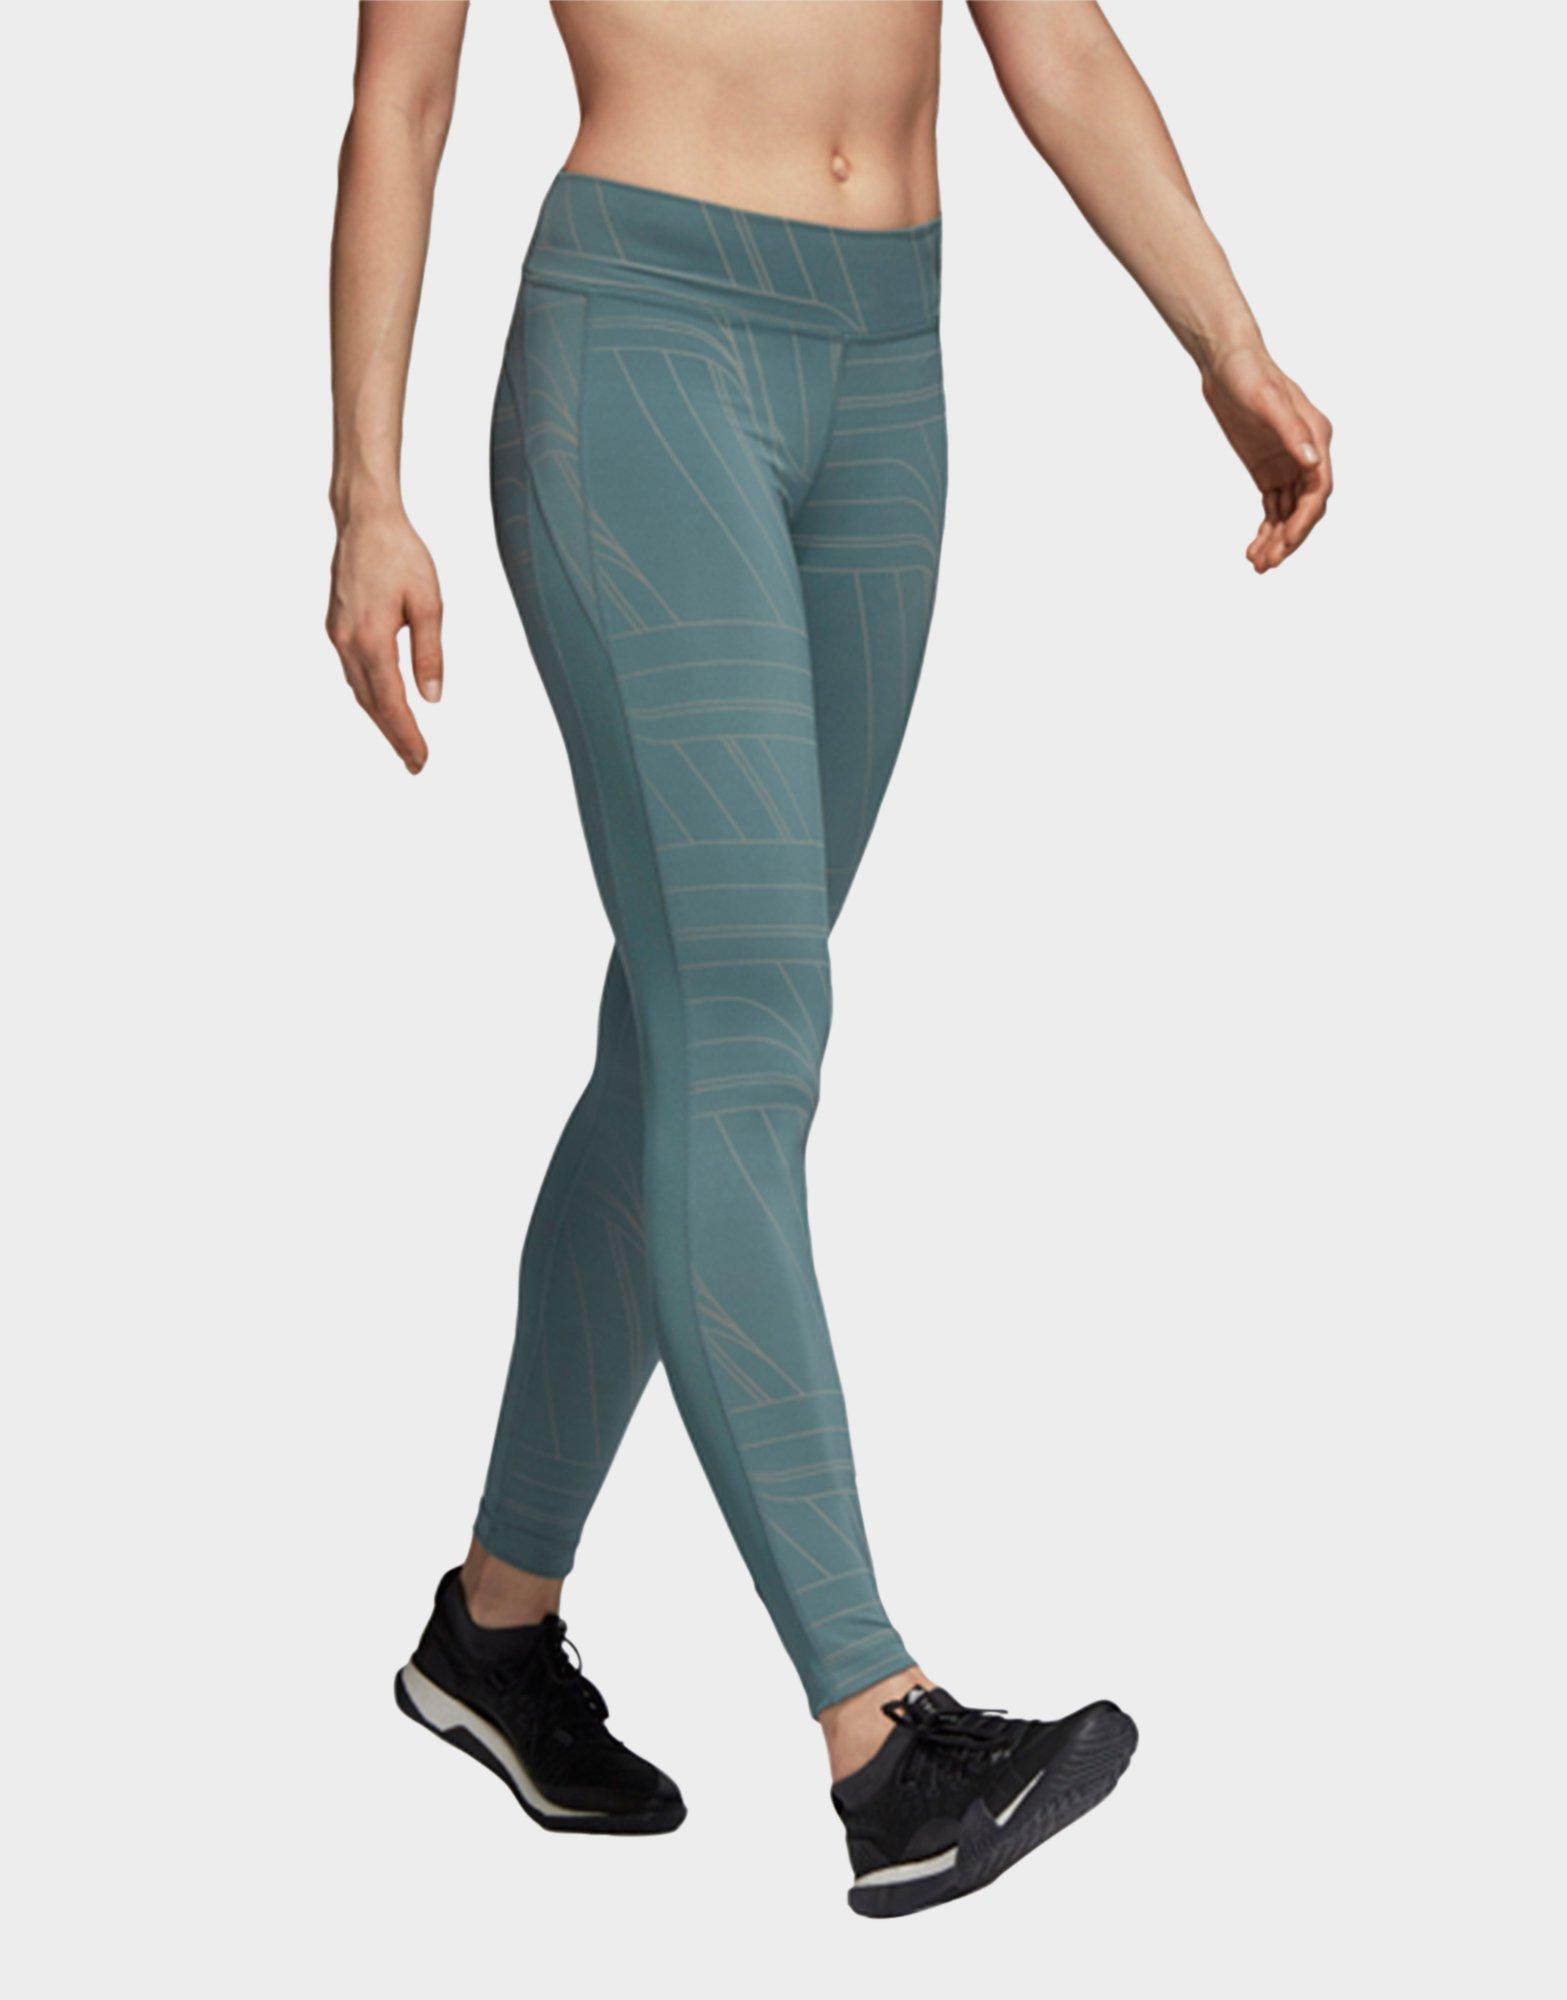 Lyst - Adidas Believe This Long Tights in Green bd1b67007ab